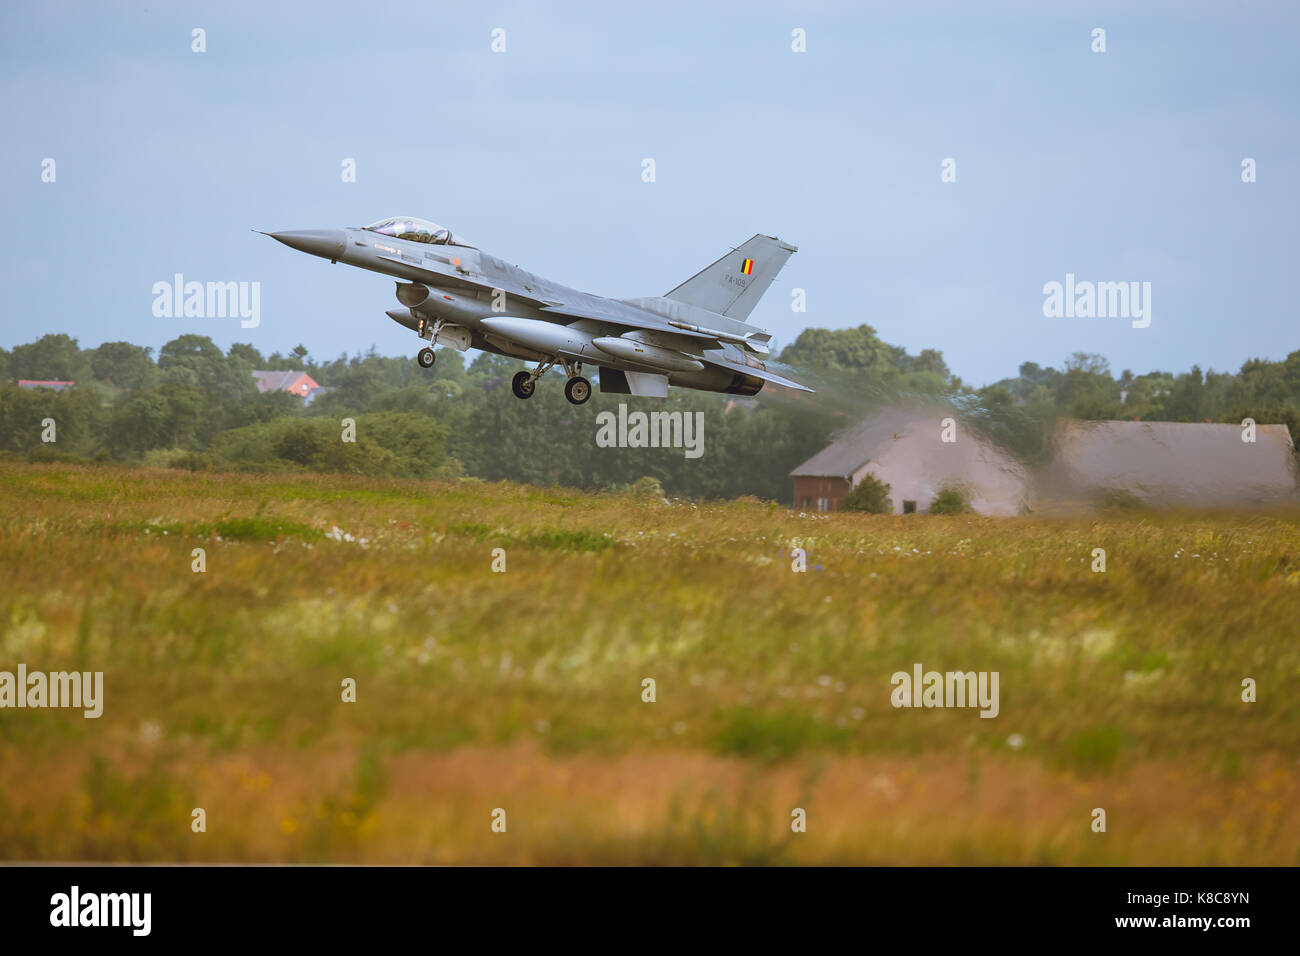 General Dynamics F-16 Fighting Falcon at NATO Tiger Meet 2014 - Stock Image